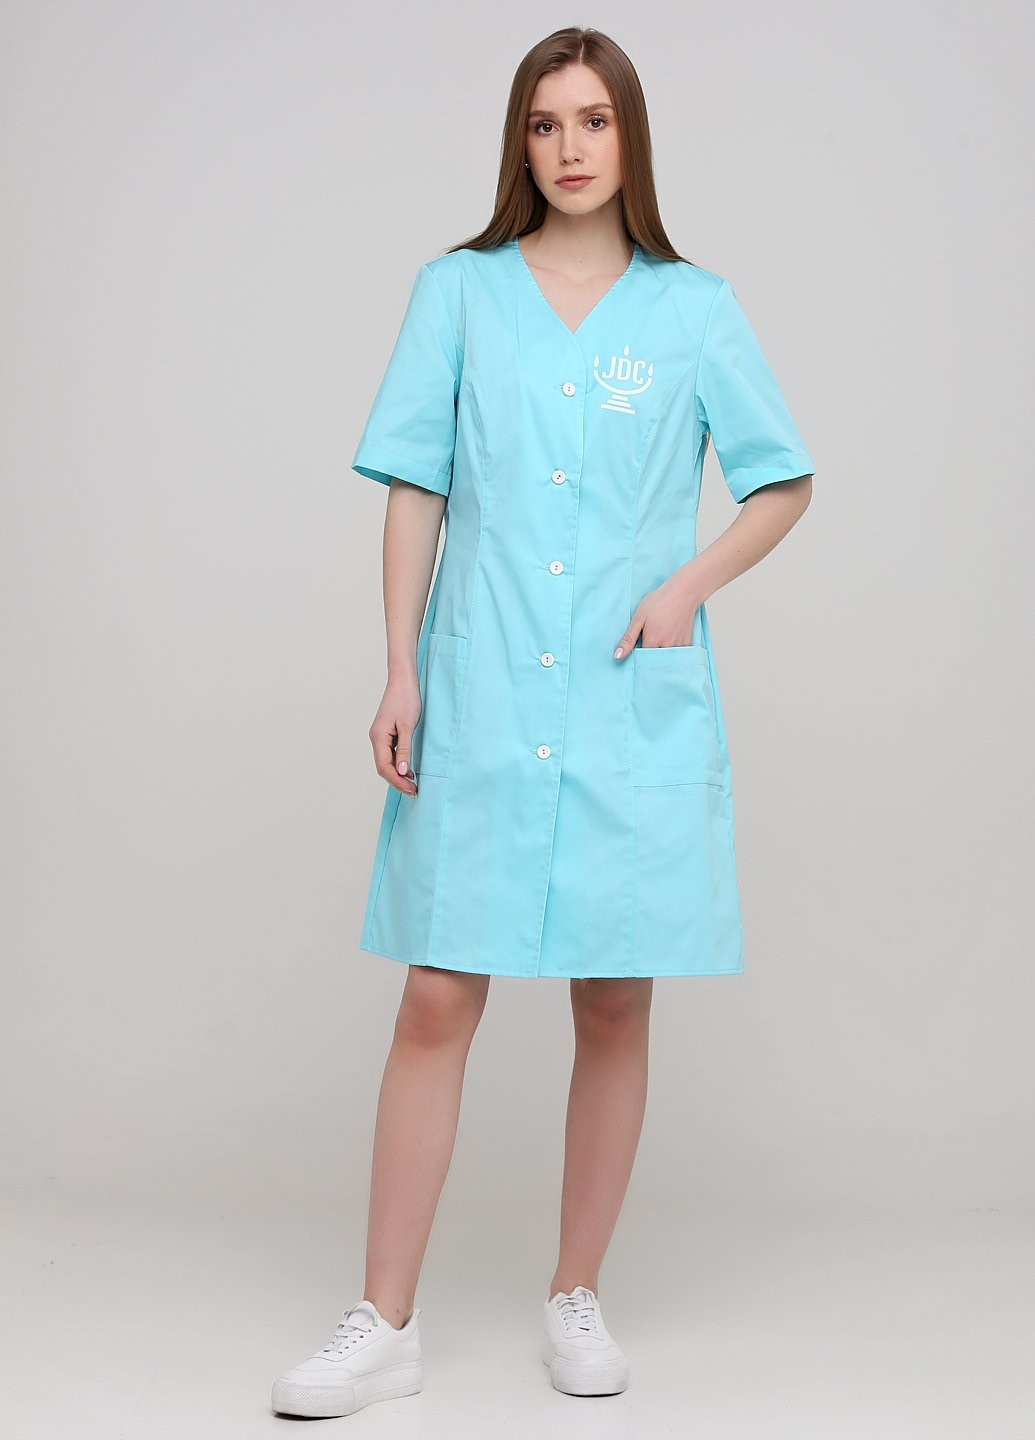 Medical clothing for women